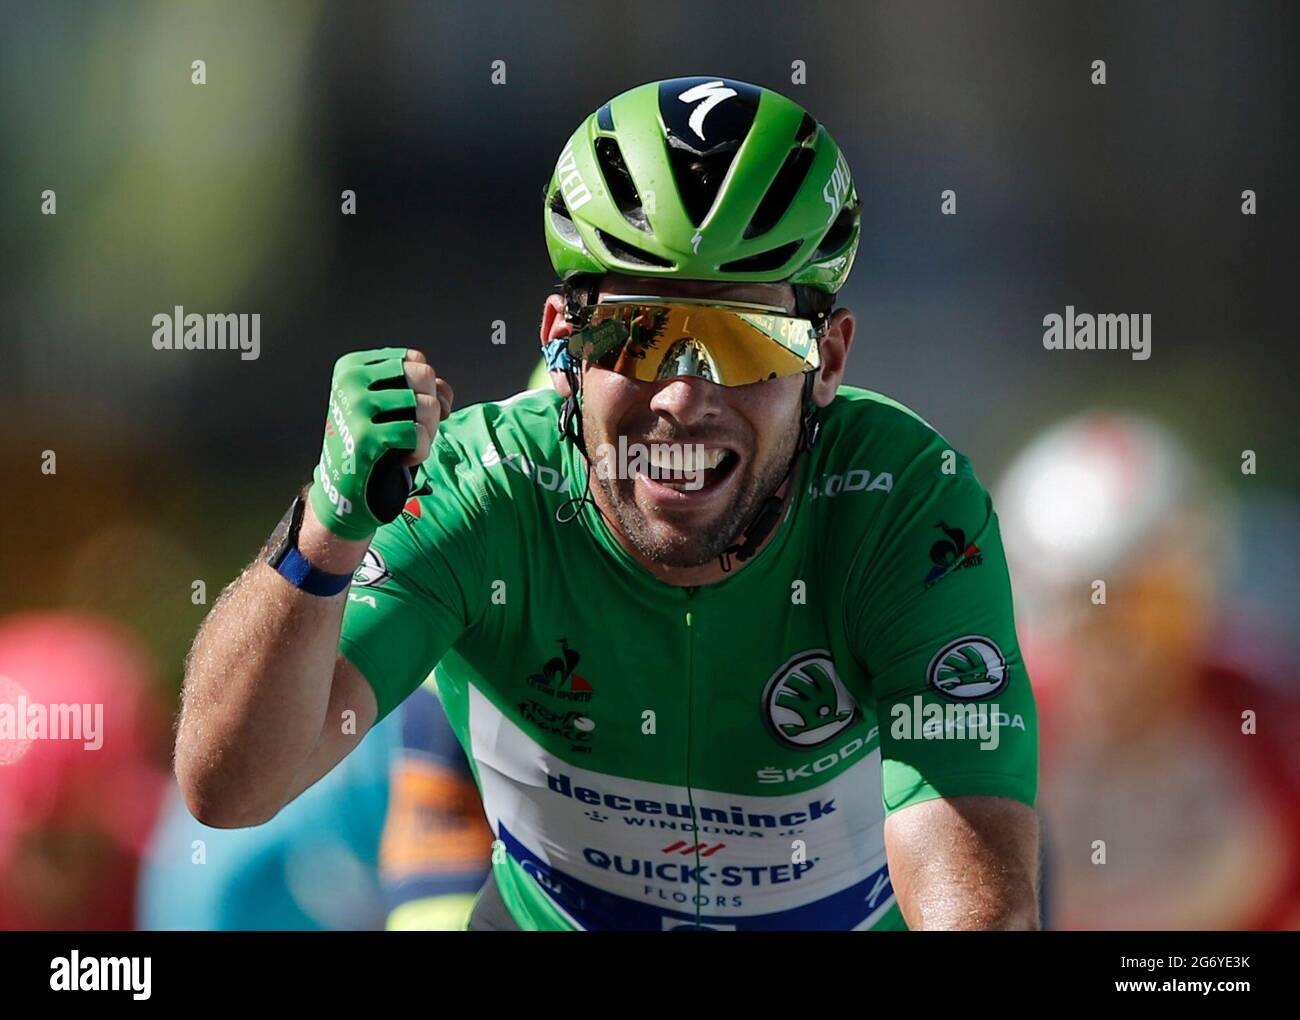 Cycling - Tour de France - Stage 13 - Nimes to Carcassonne - France - July 9, 2021 Deceuninck–Quick-Step rider Mark Cavendish of Britain wearing the green jersey celebrates as he crosses the line to win stage 13 REUTERS/Benoit Tessier Stock Photo